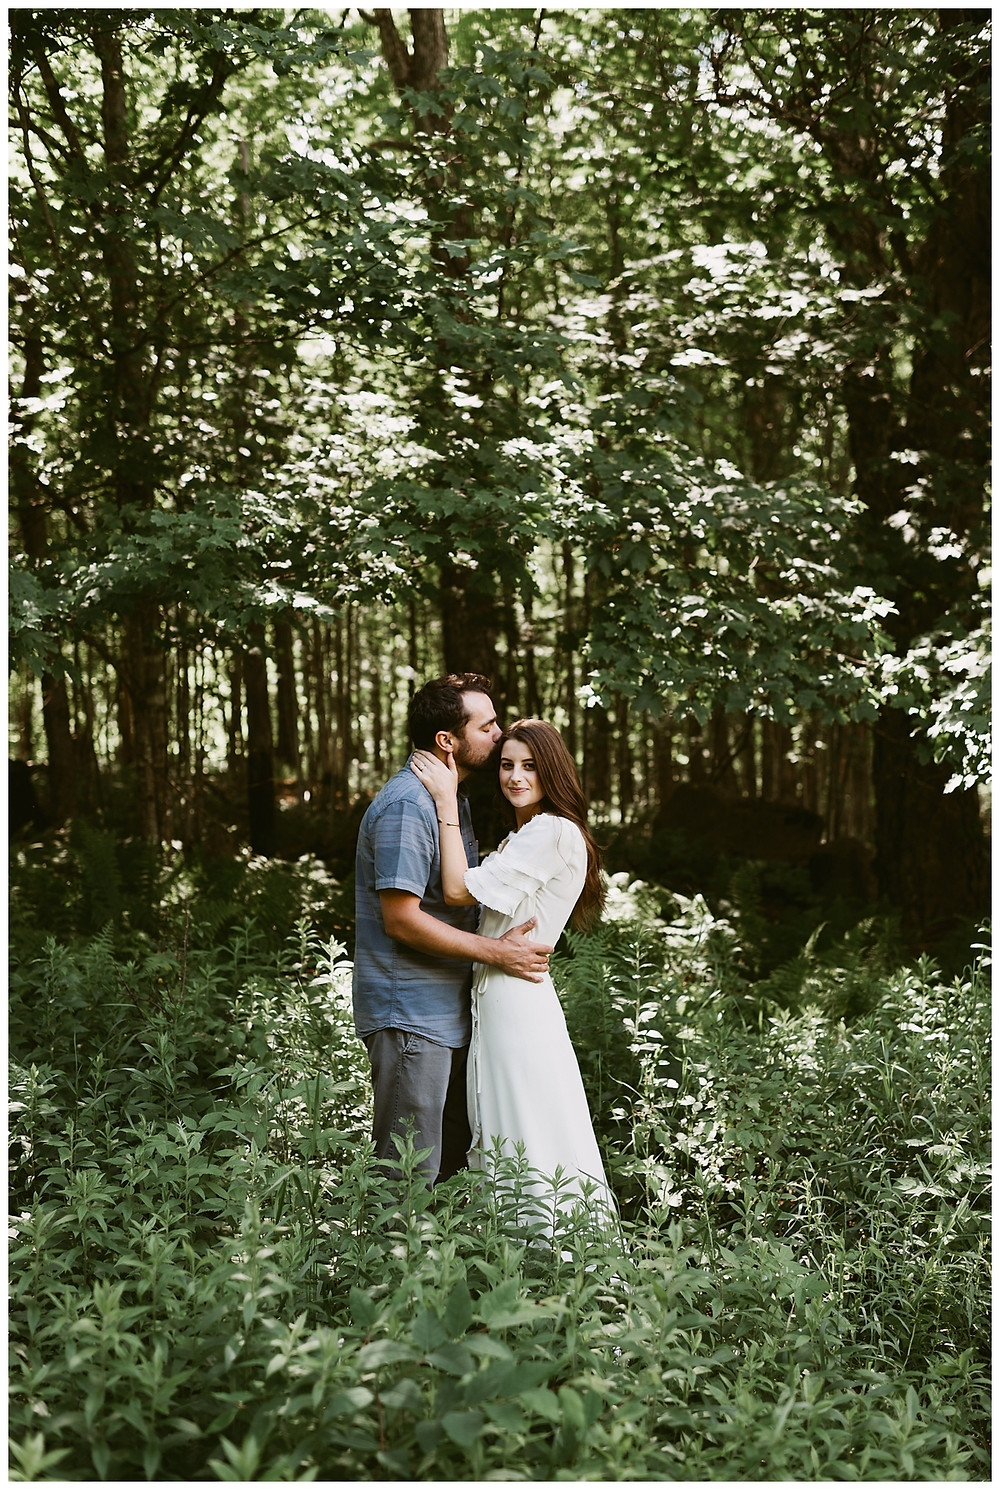 Romantic outdoor engagement session in Tupper Lake, NY by Mountainaire Gatherings